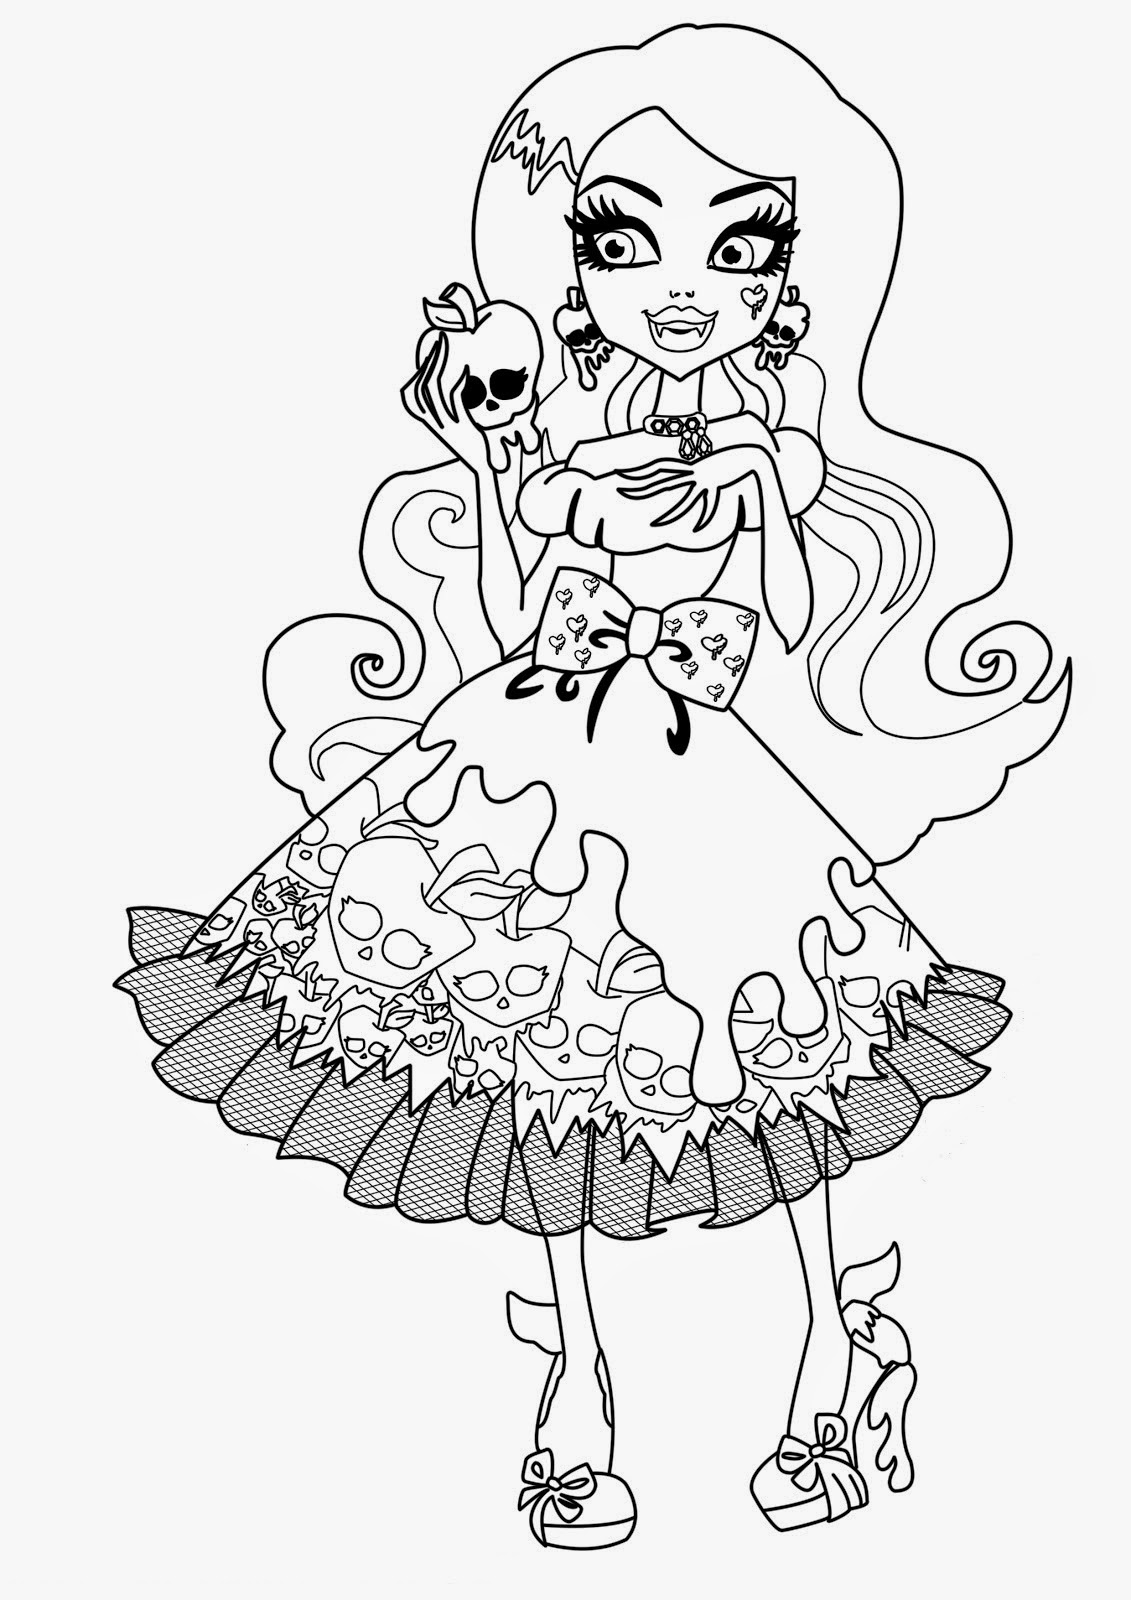 monster high free coloring pages to print coloring pages monster high coloring pages free and printable pages monster coloring print to free high